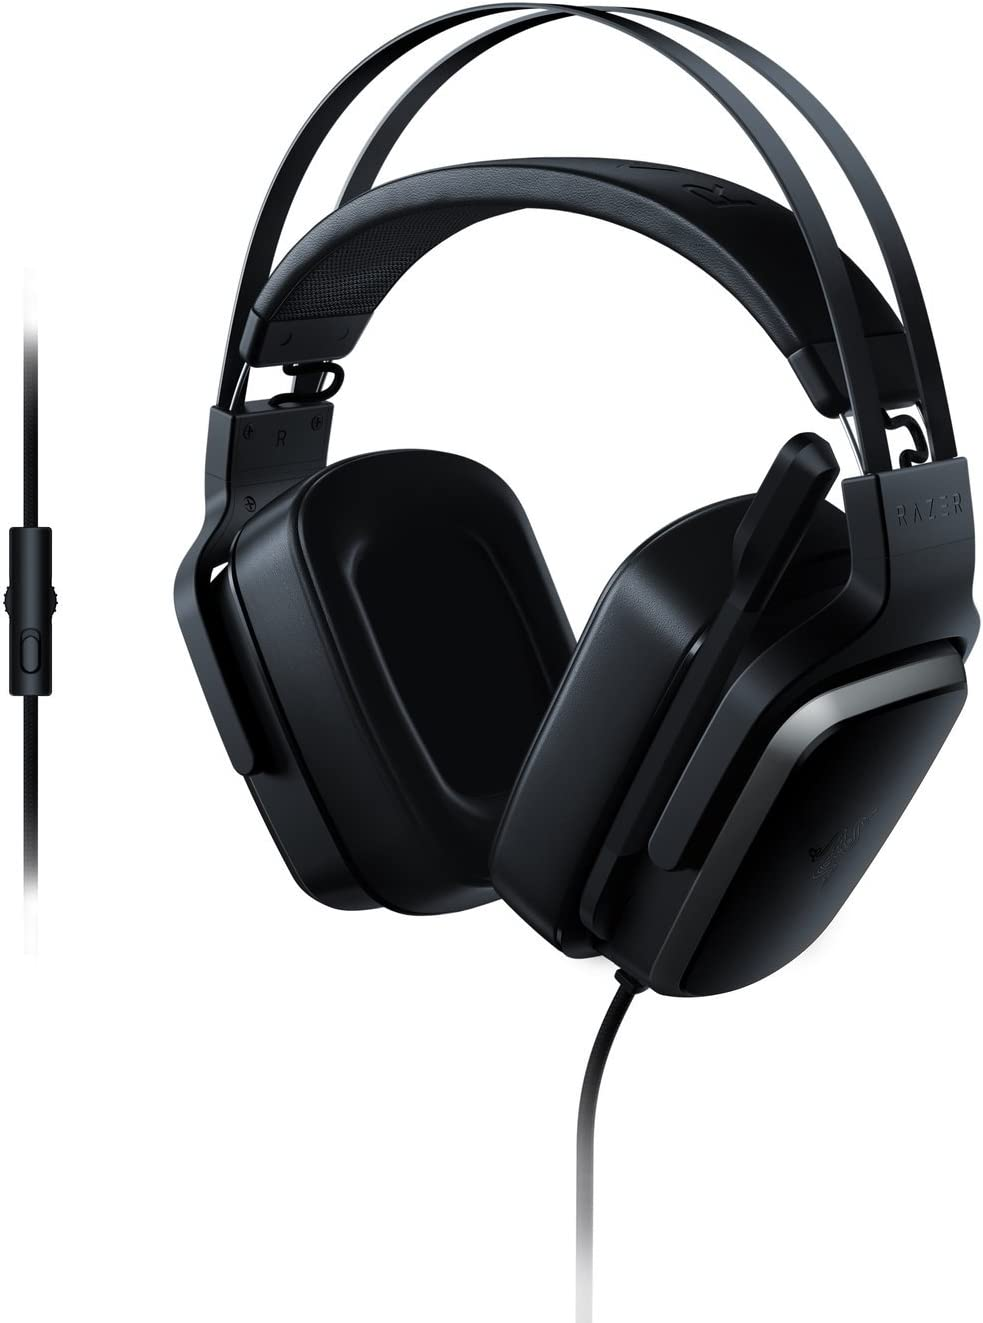 Razer Tiamat 2.2 V2 – Analog Gaming Headset – In-Ear Double Subwoofer Drivers – 7.1 Virtual Surround Sound – Compatible with PC, Xbox One, Playstation 4, and Nintendo Switch Renewed